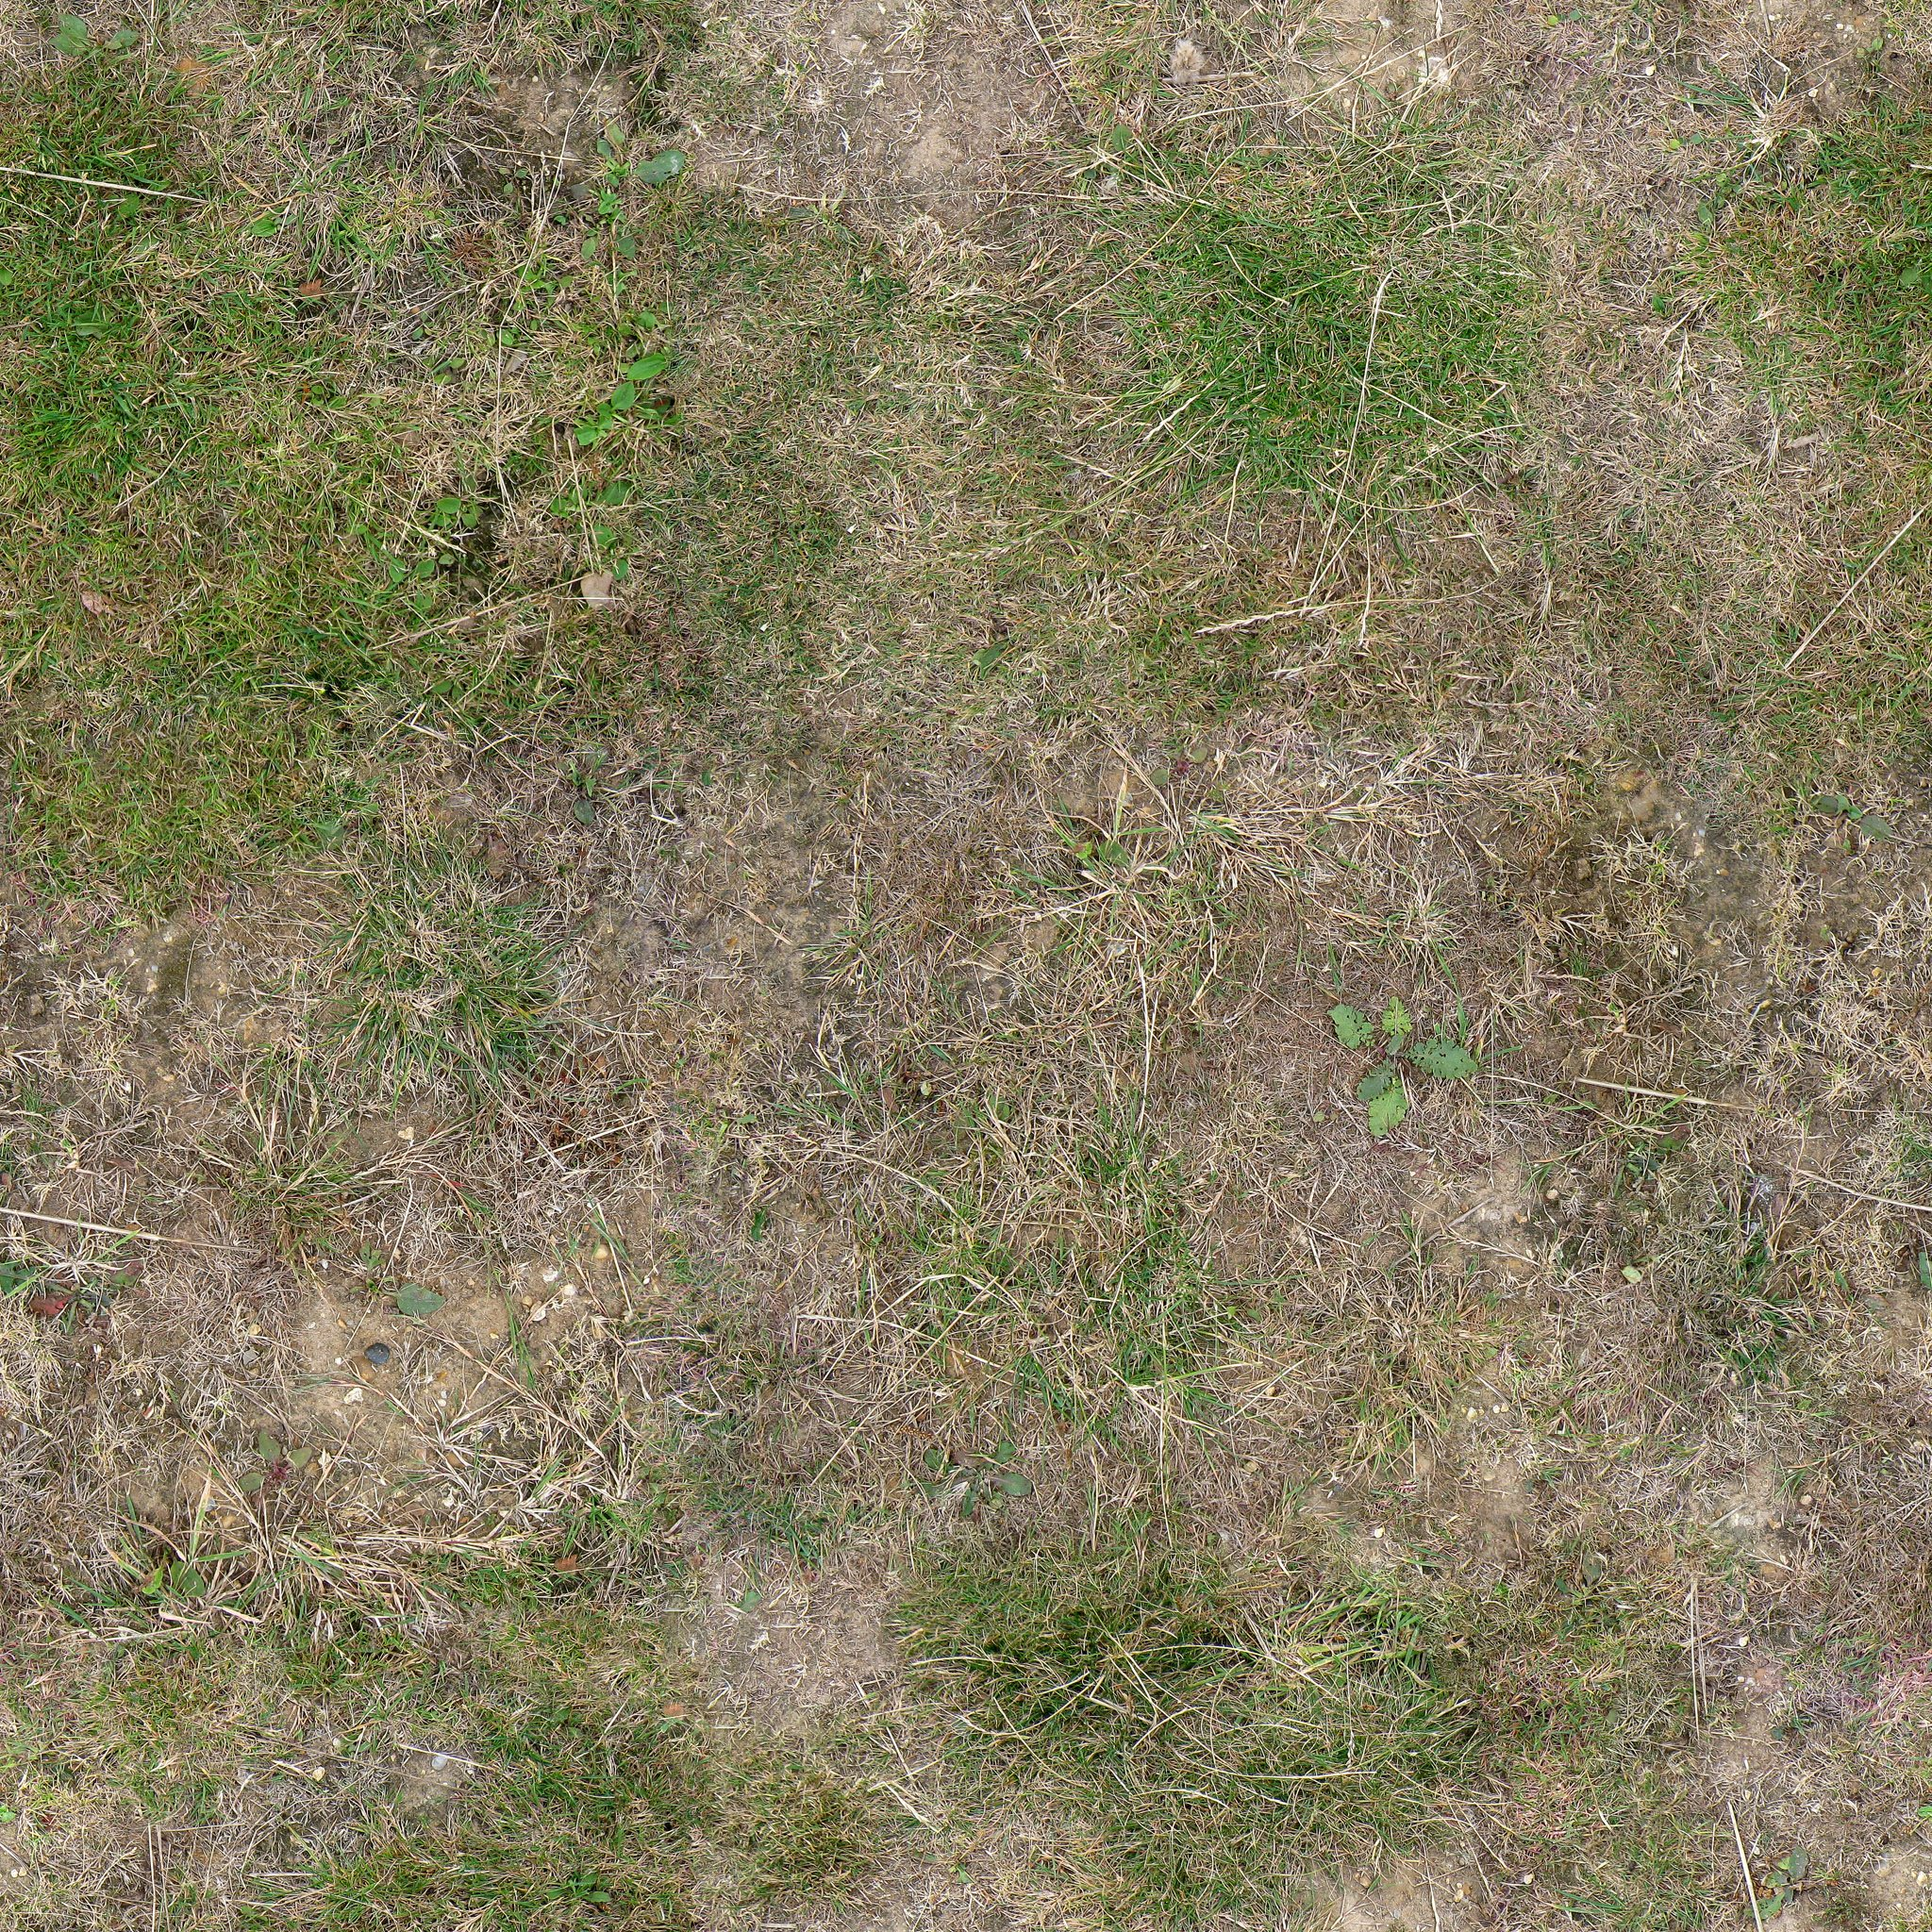 Dirt texture seamless Rpg Ground Texture Free Photo Ground Texture Soil Surface Texture Free Download